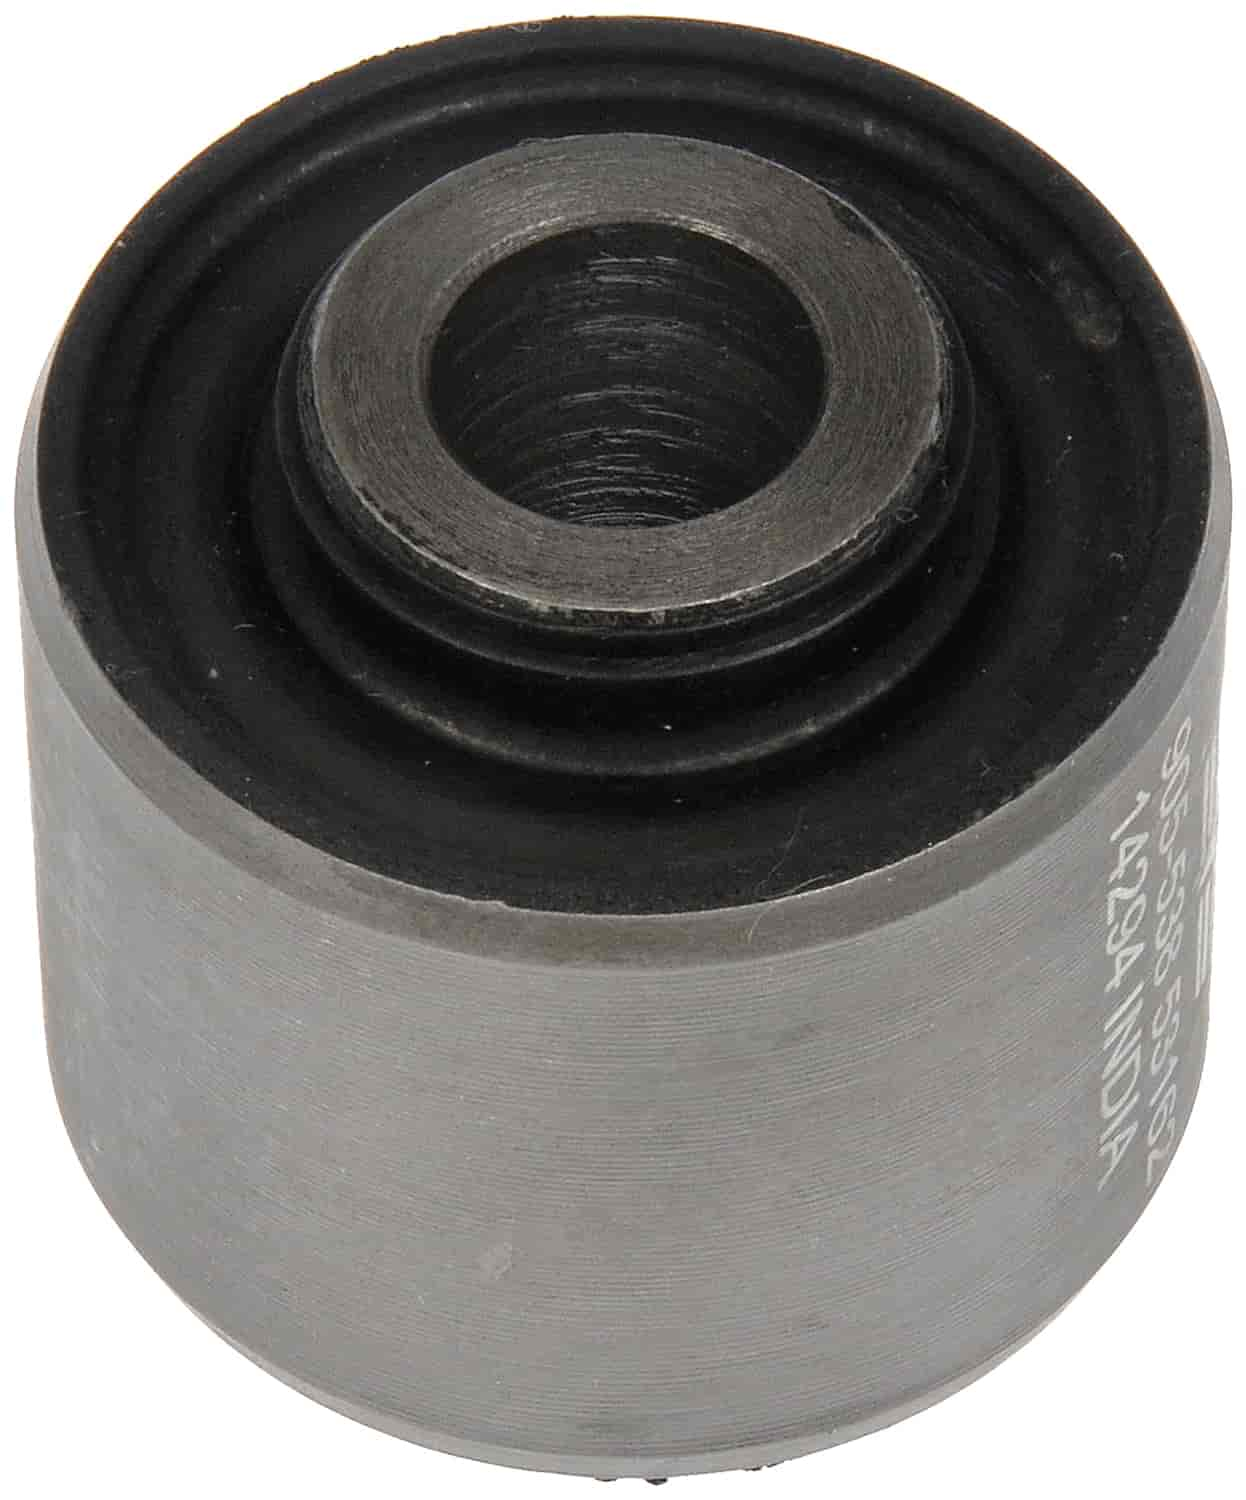 Dorman Products 905-538